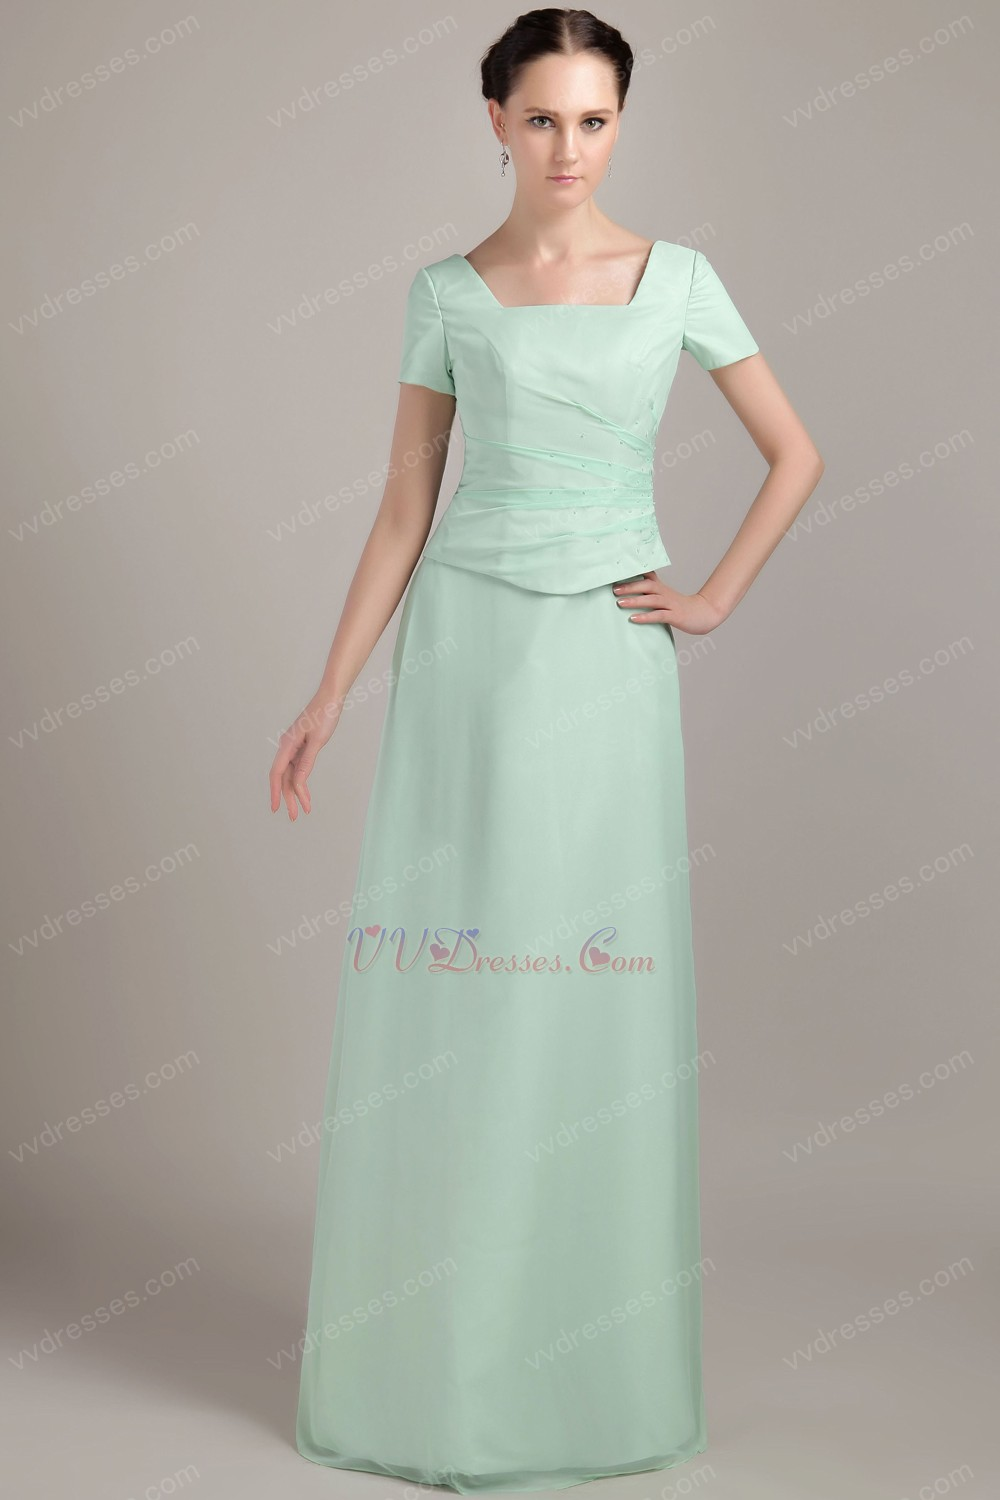 Cheap Short Sleeves Apple Green Dress For Bridal Mother